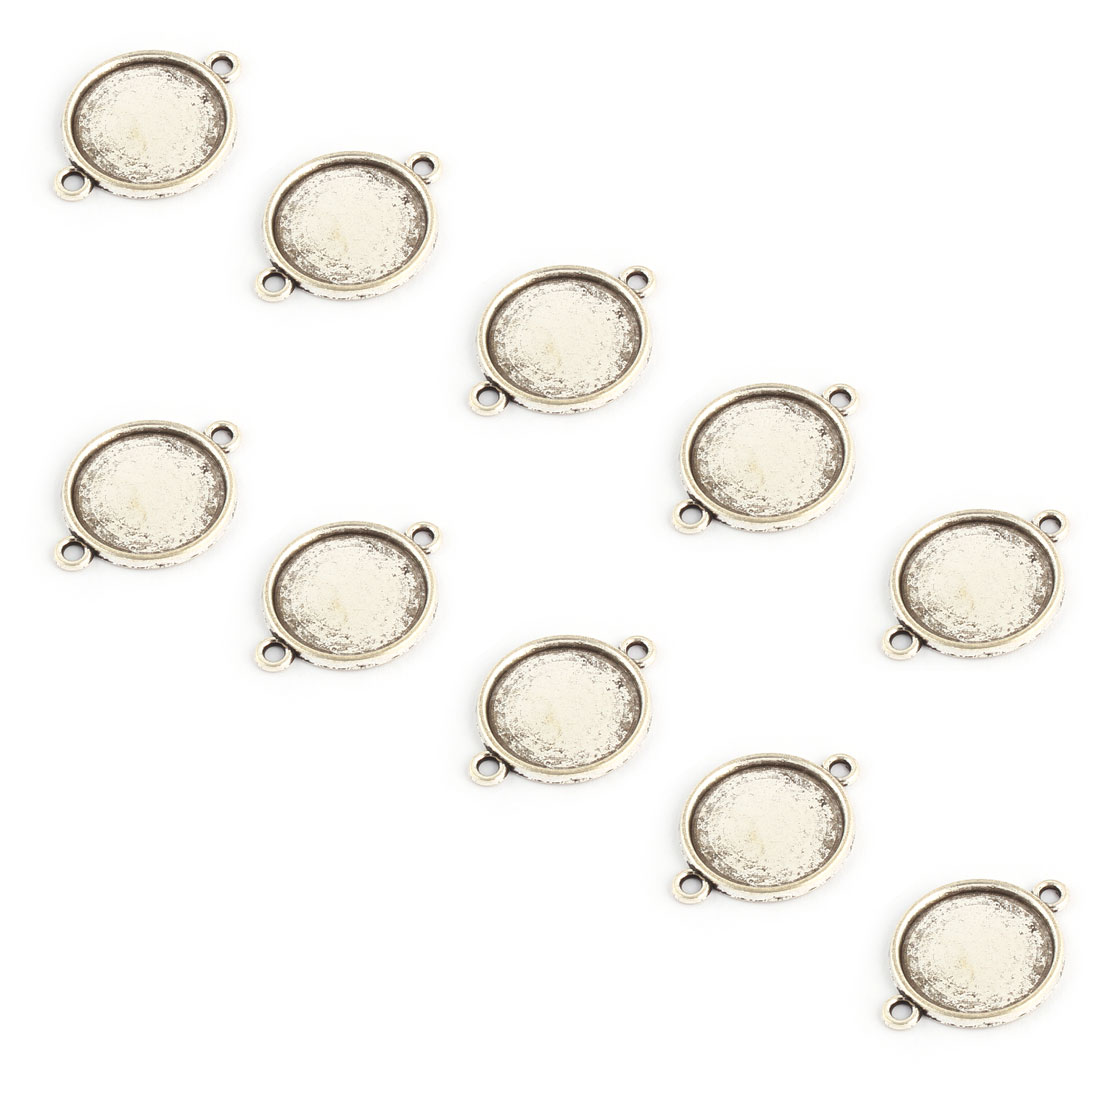 Home Copper Alloy Double Holes Pendant Trays Silver Tone 16mm Inner Dia 10 Pcs